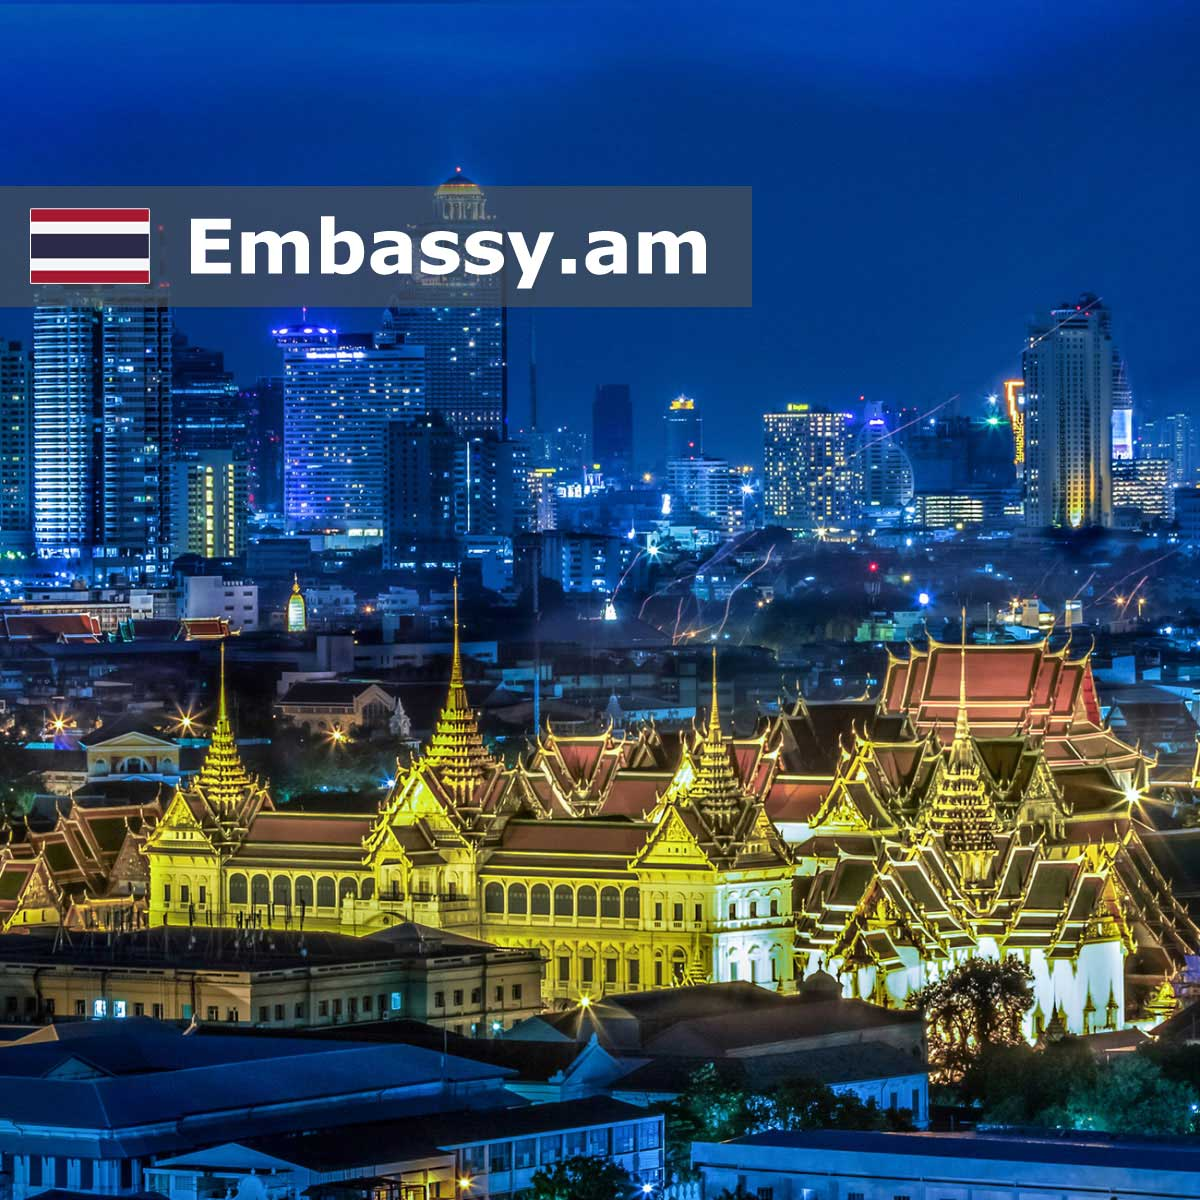 Hotels in Thailand- Embassy.am